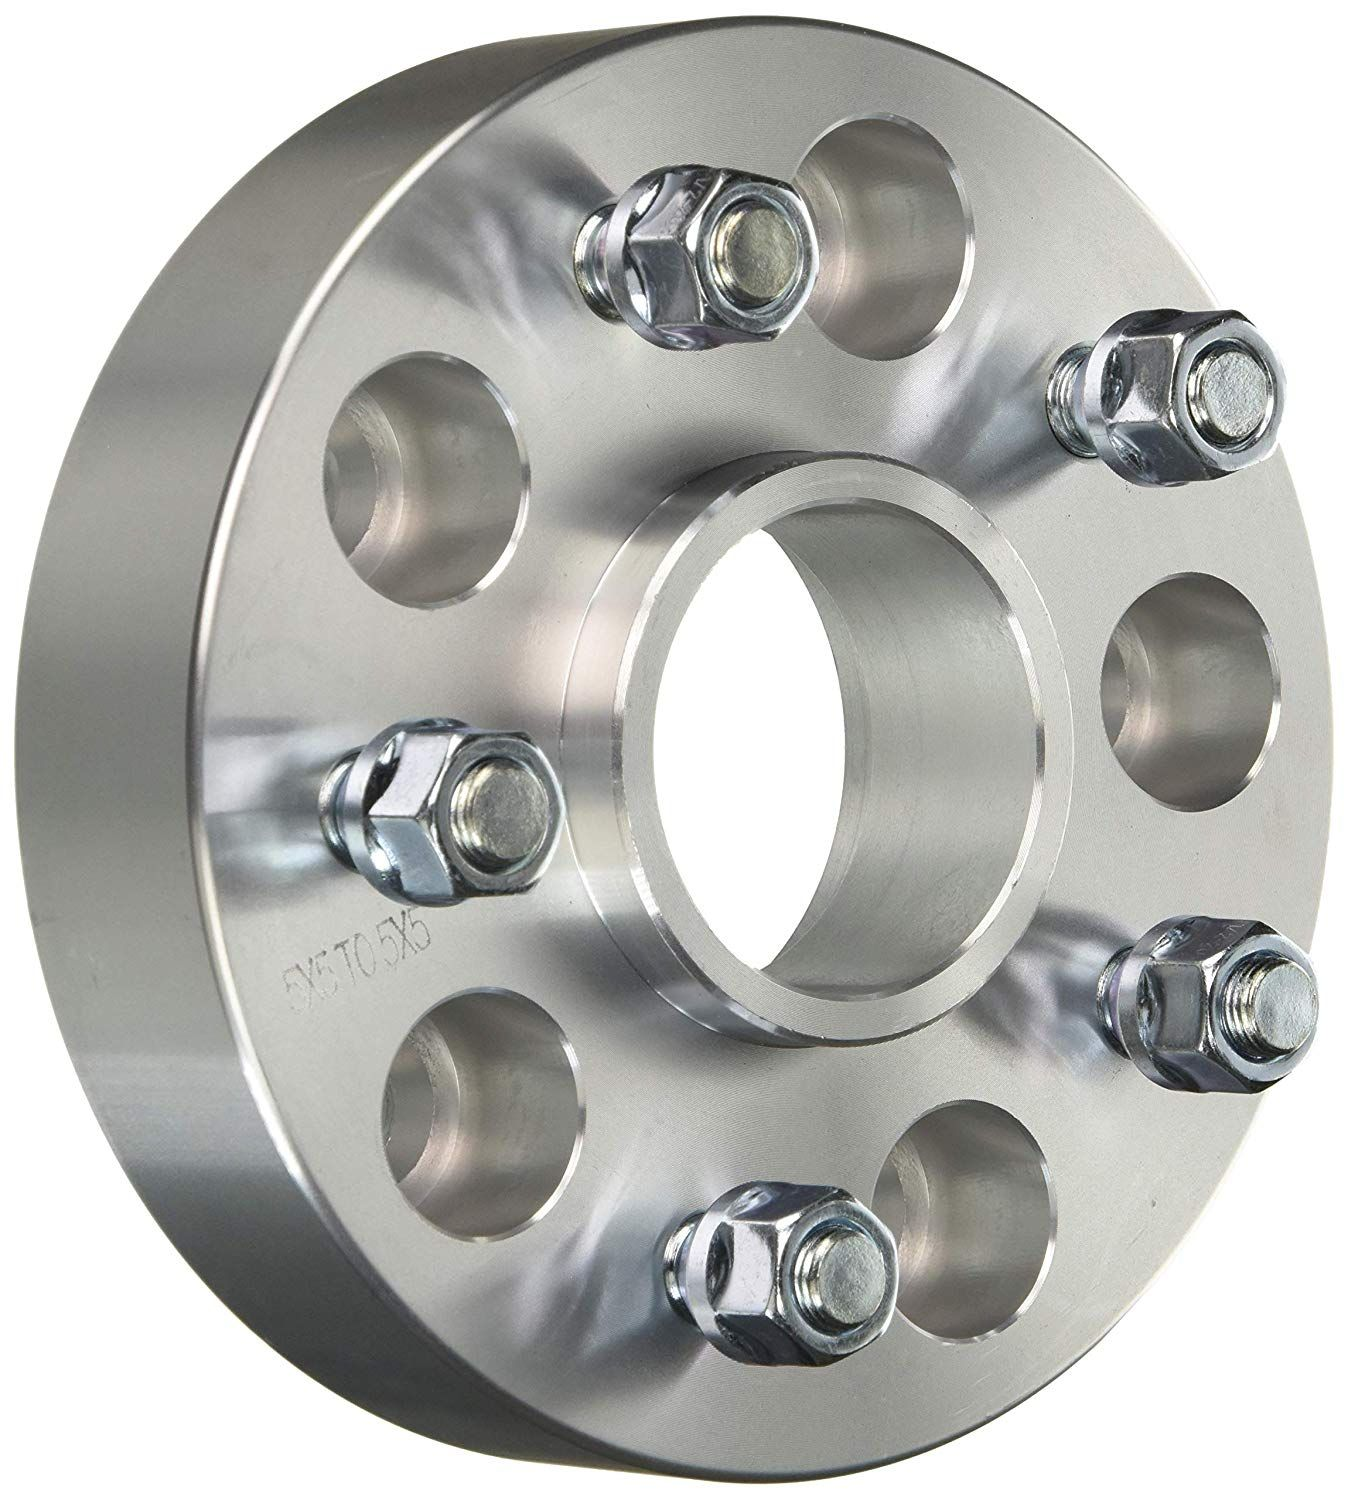 Rough Country 1091 1 5 Inch Wheel Spacer Pair 5 By 5 Inch